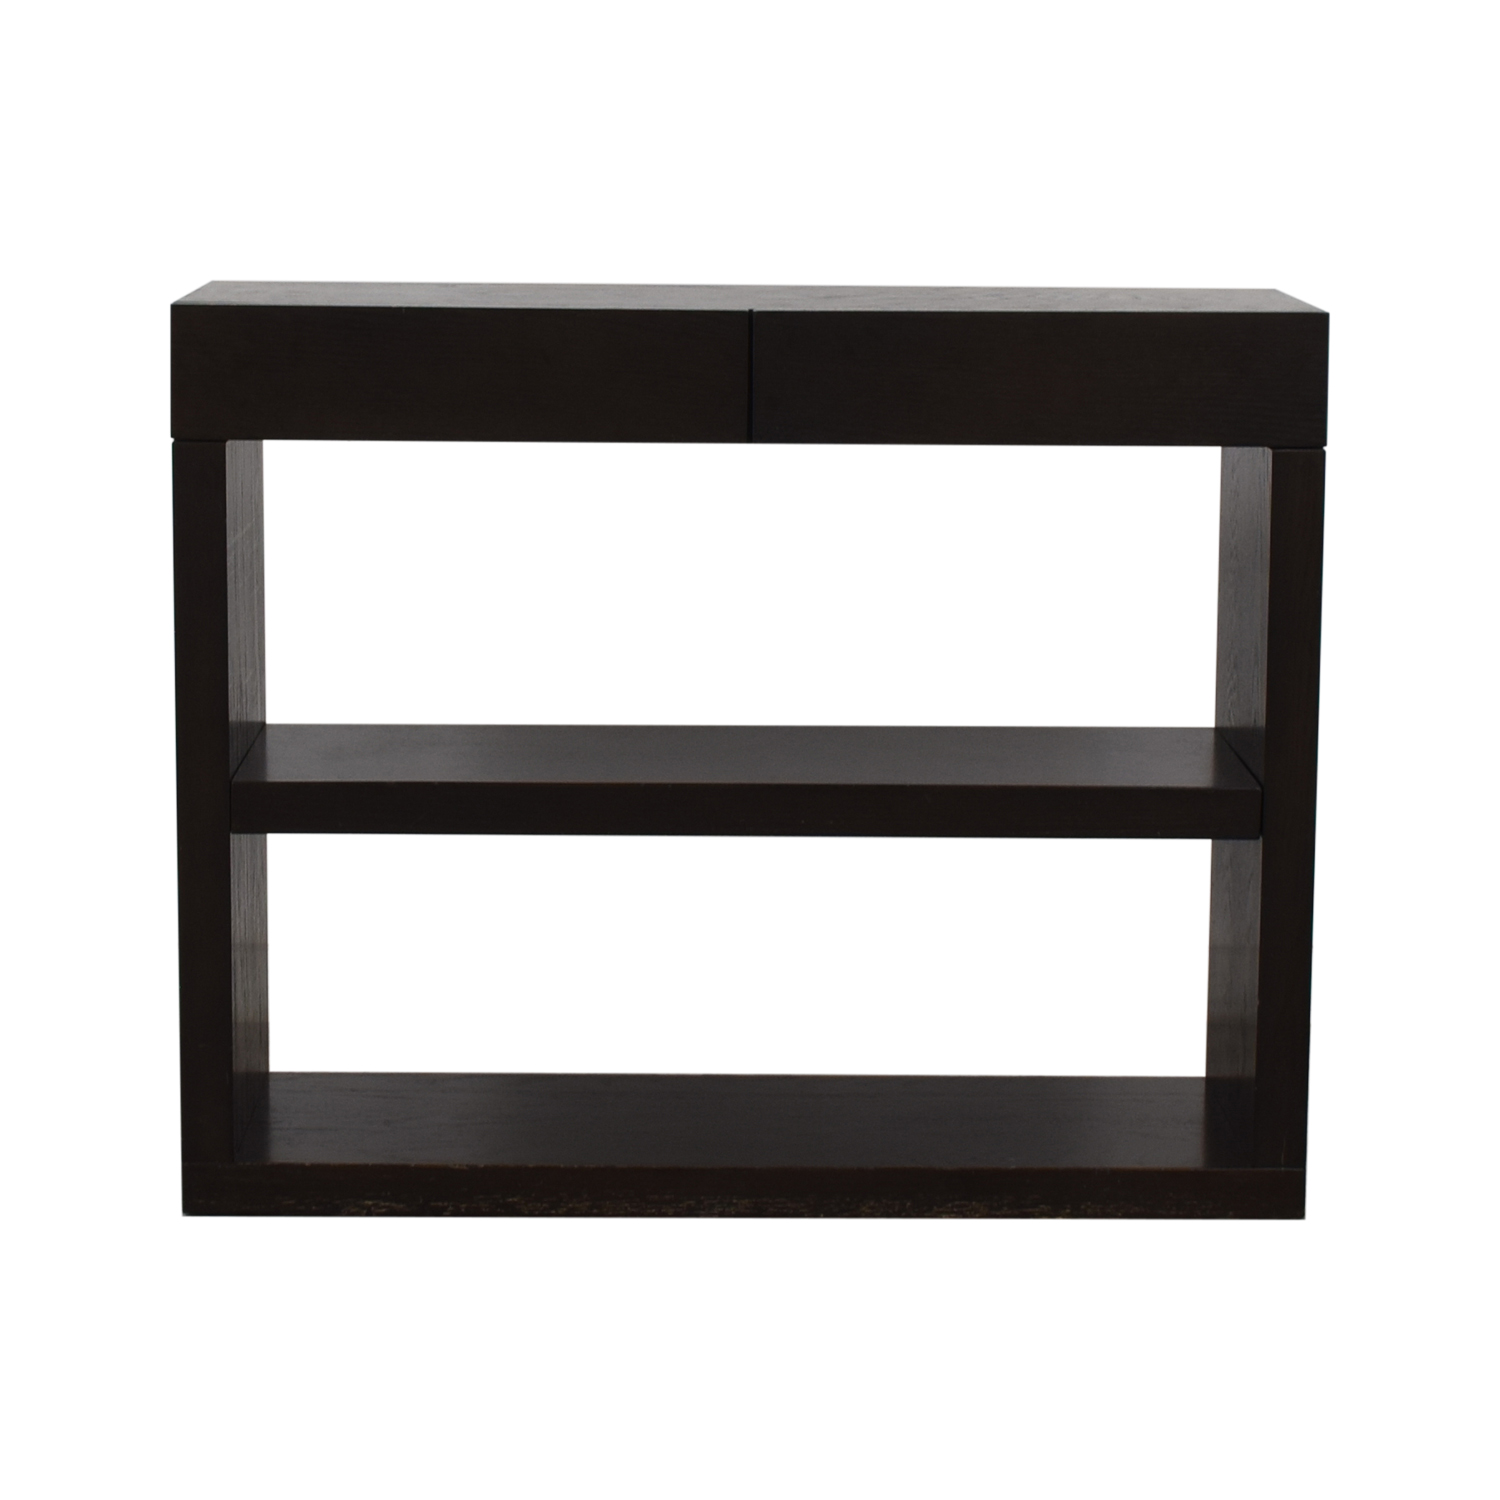 West Elm Bookshelf Console / Storage